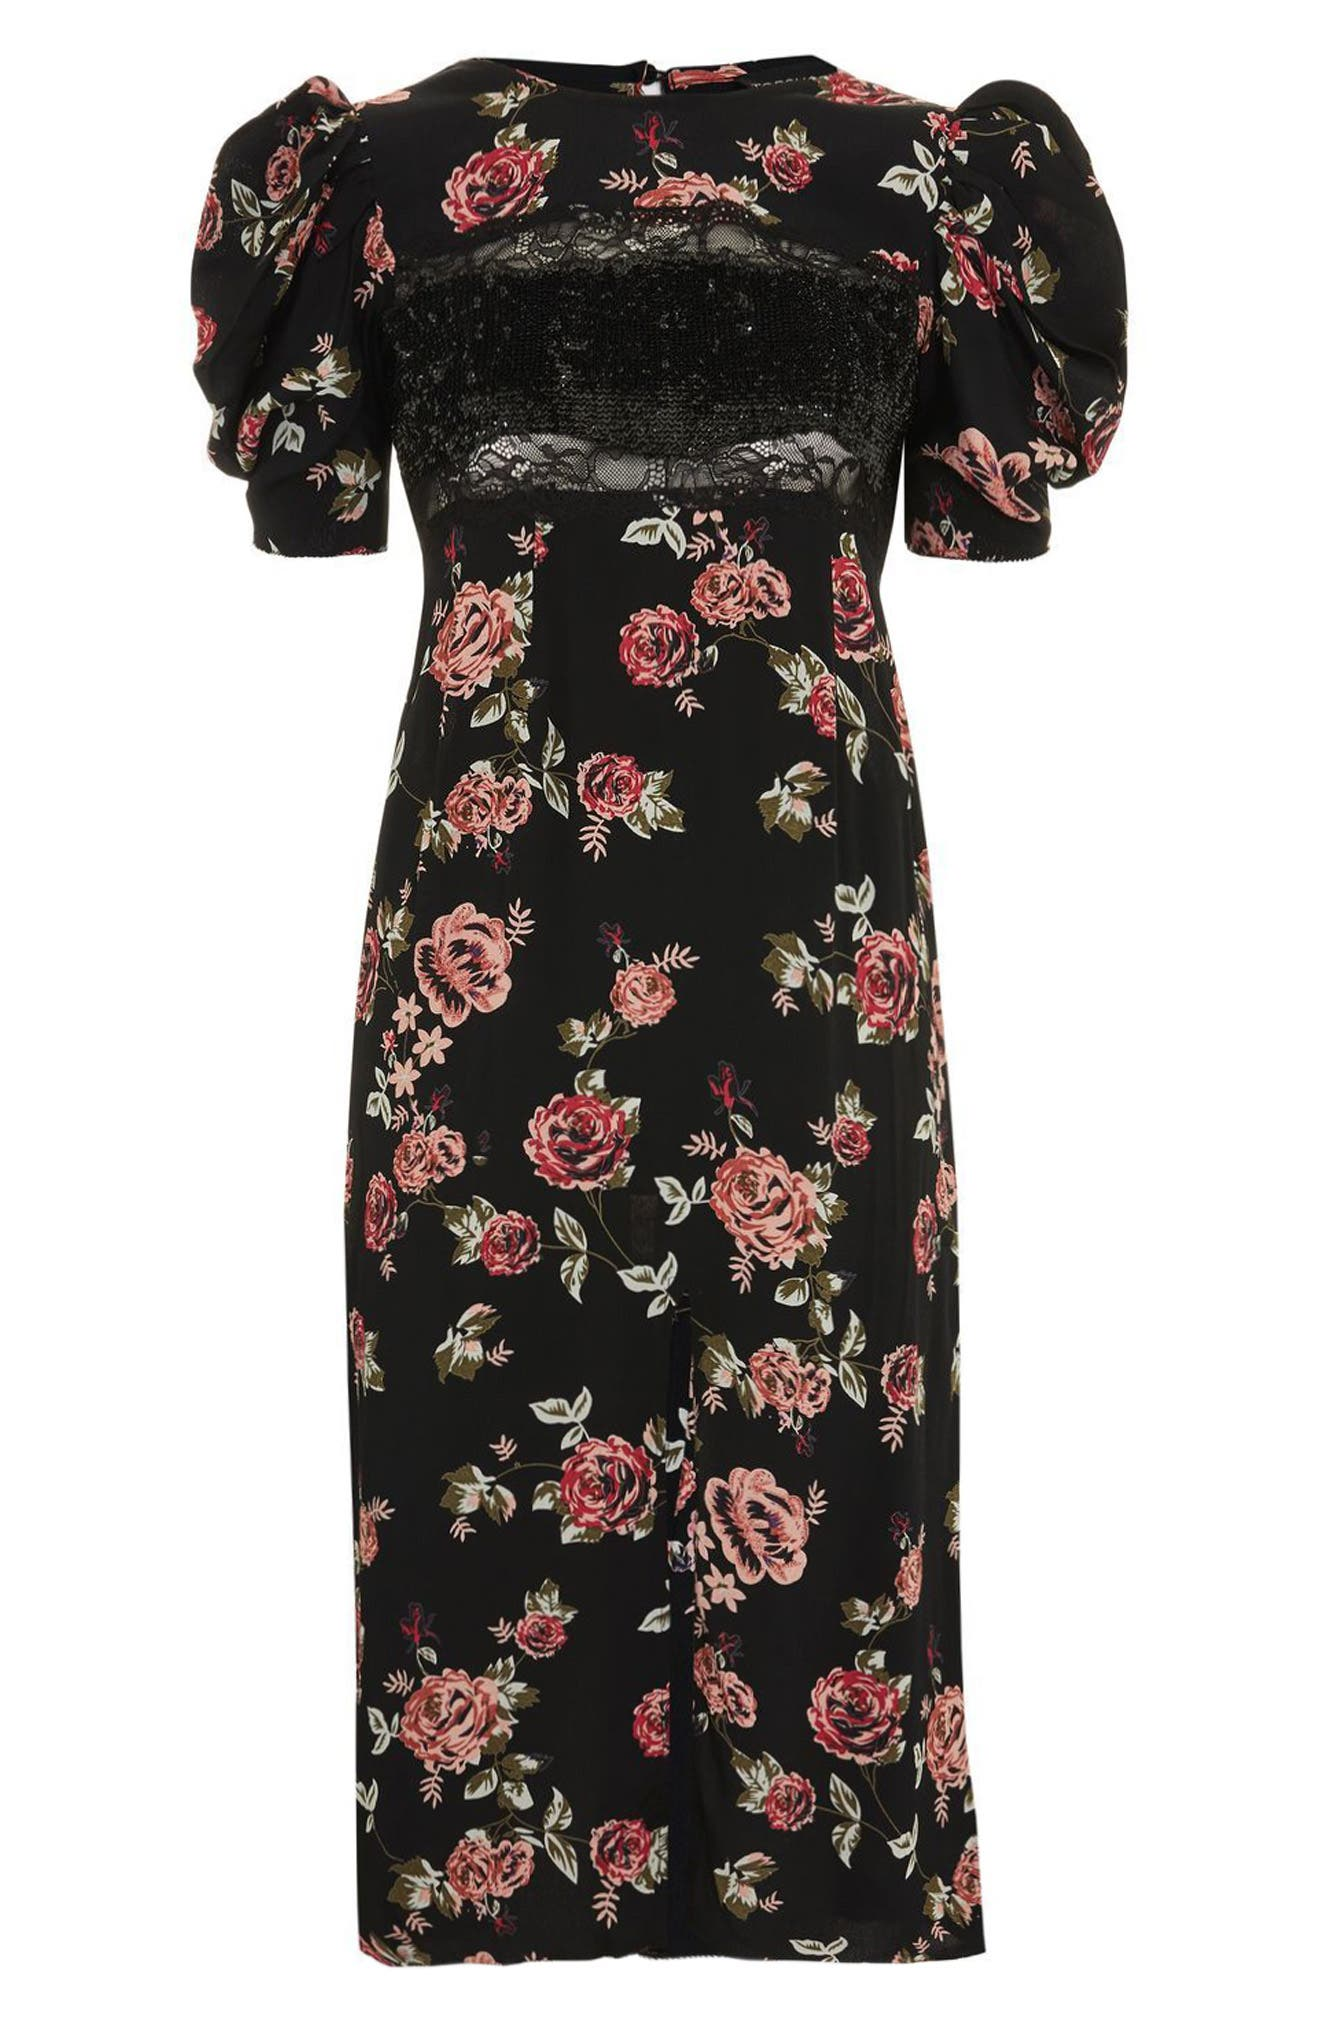 Sequined Floral Puff Sleeve Midi Dress,                             Alternate thumbnail 4, color,                             001